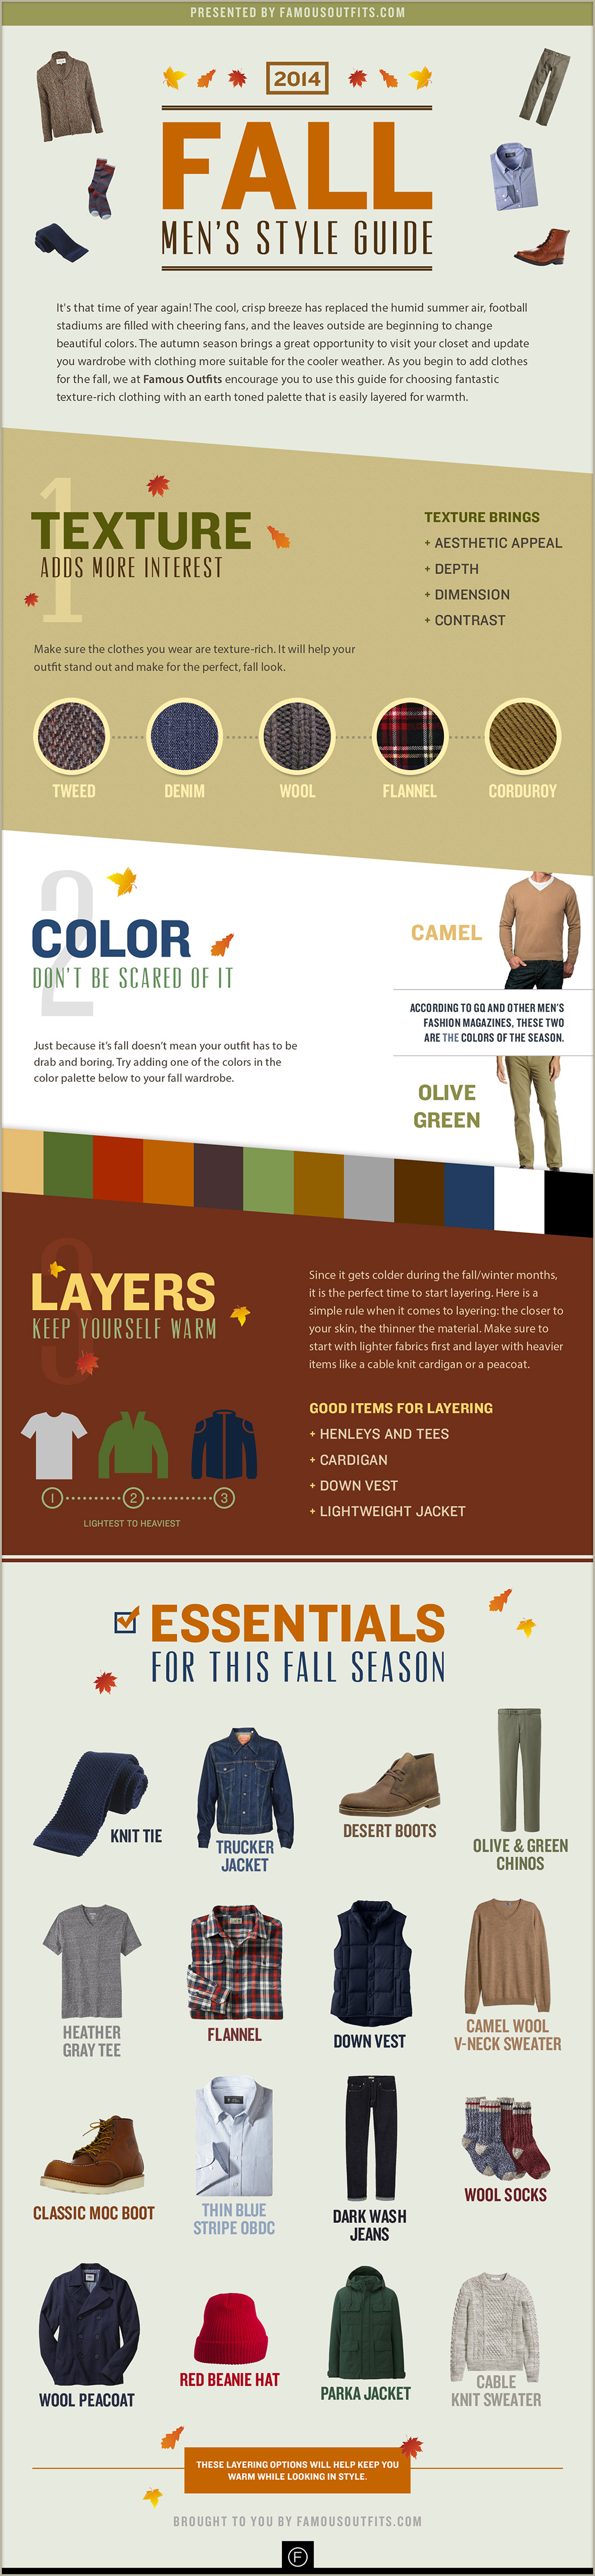 Fall Men's Style Guide